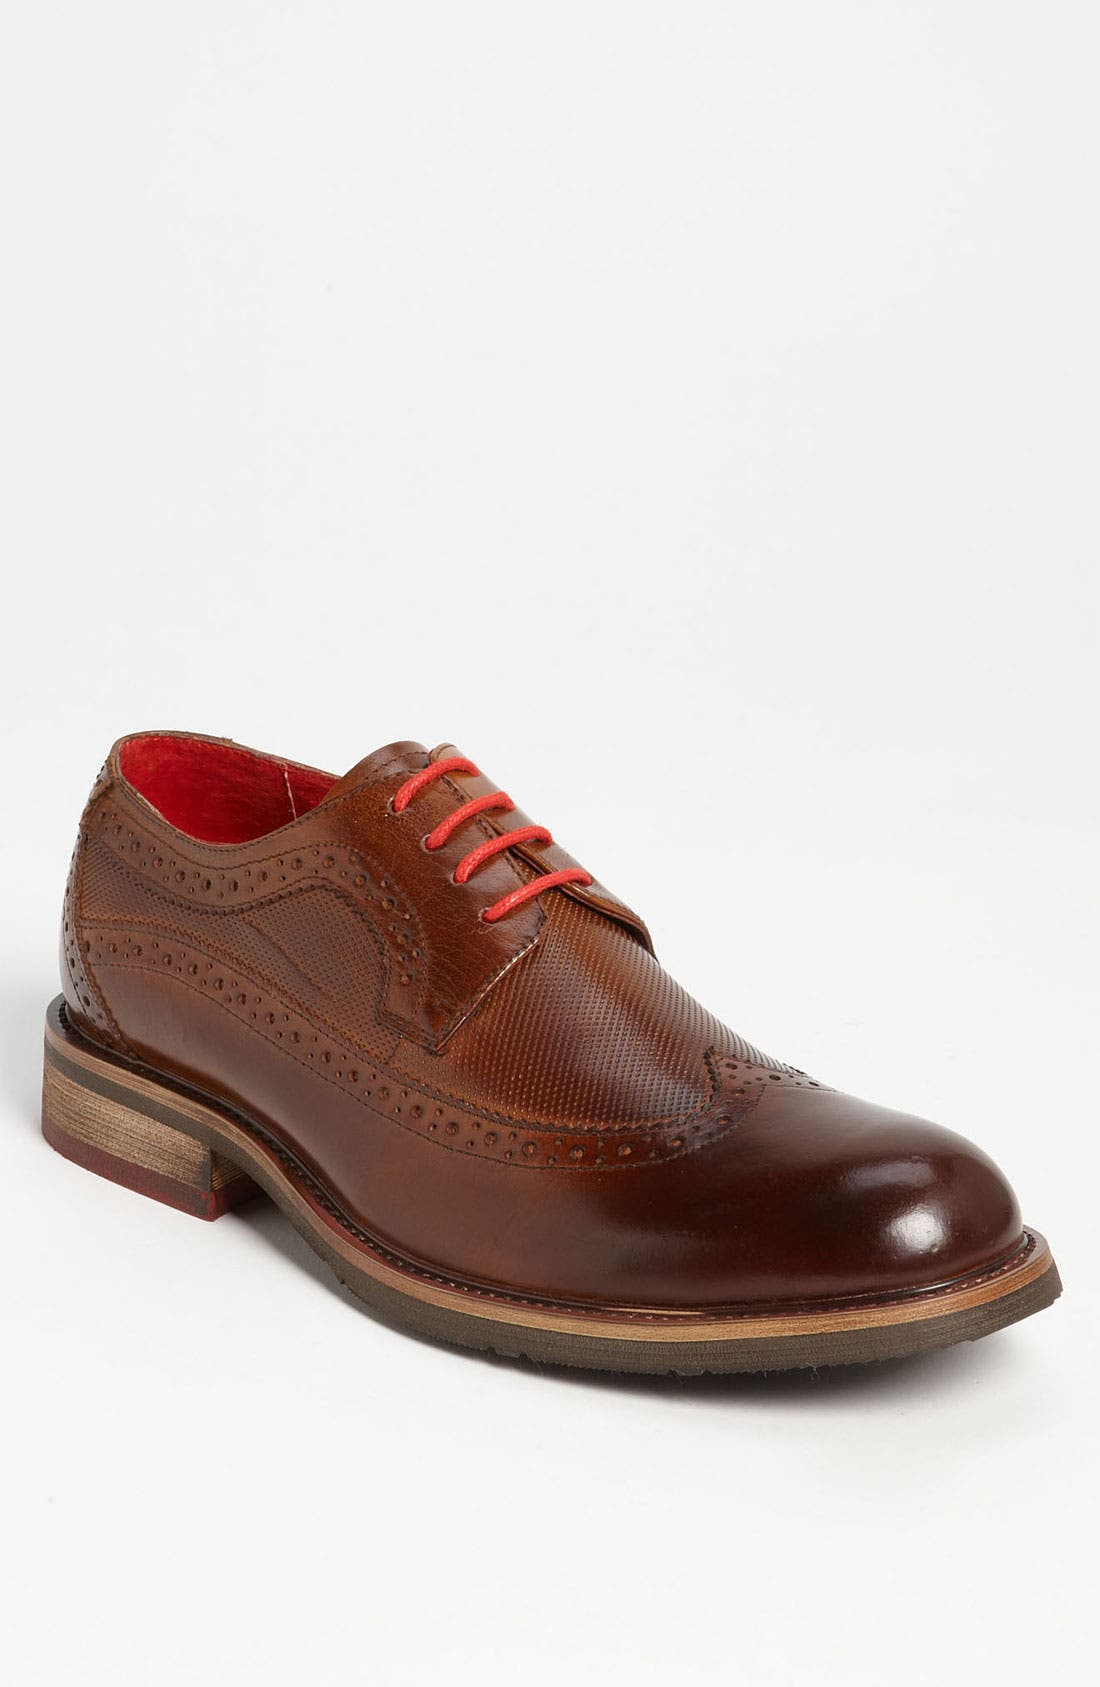 Main Image - Steve Madden 'Kittch' Longwing Oxford